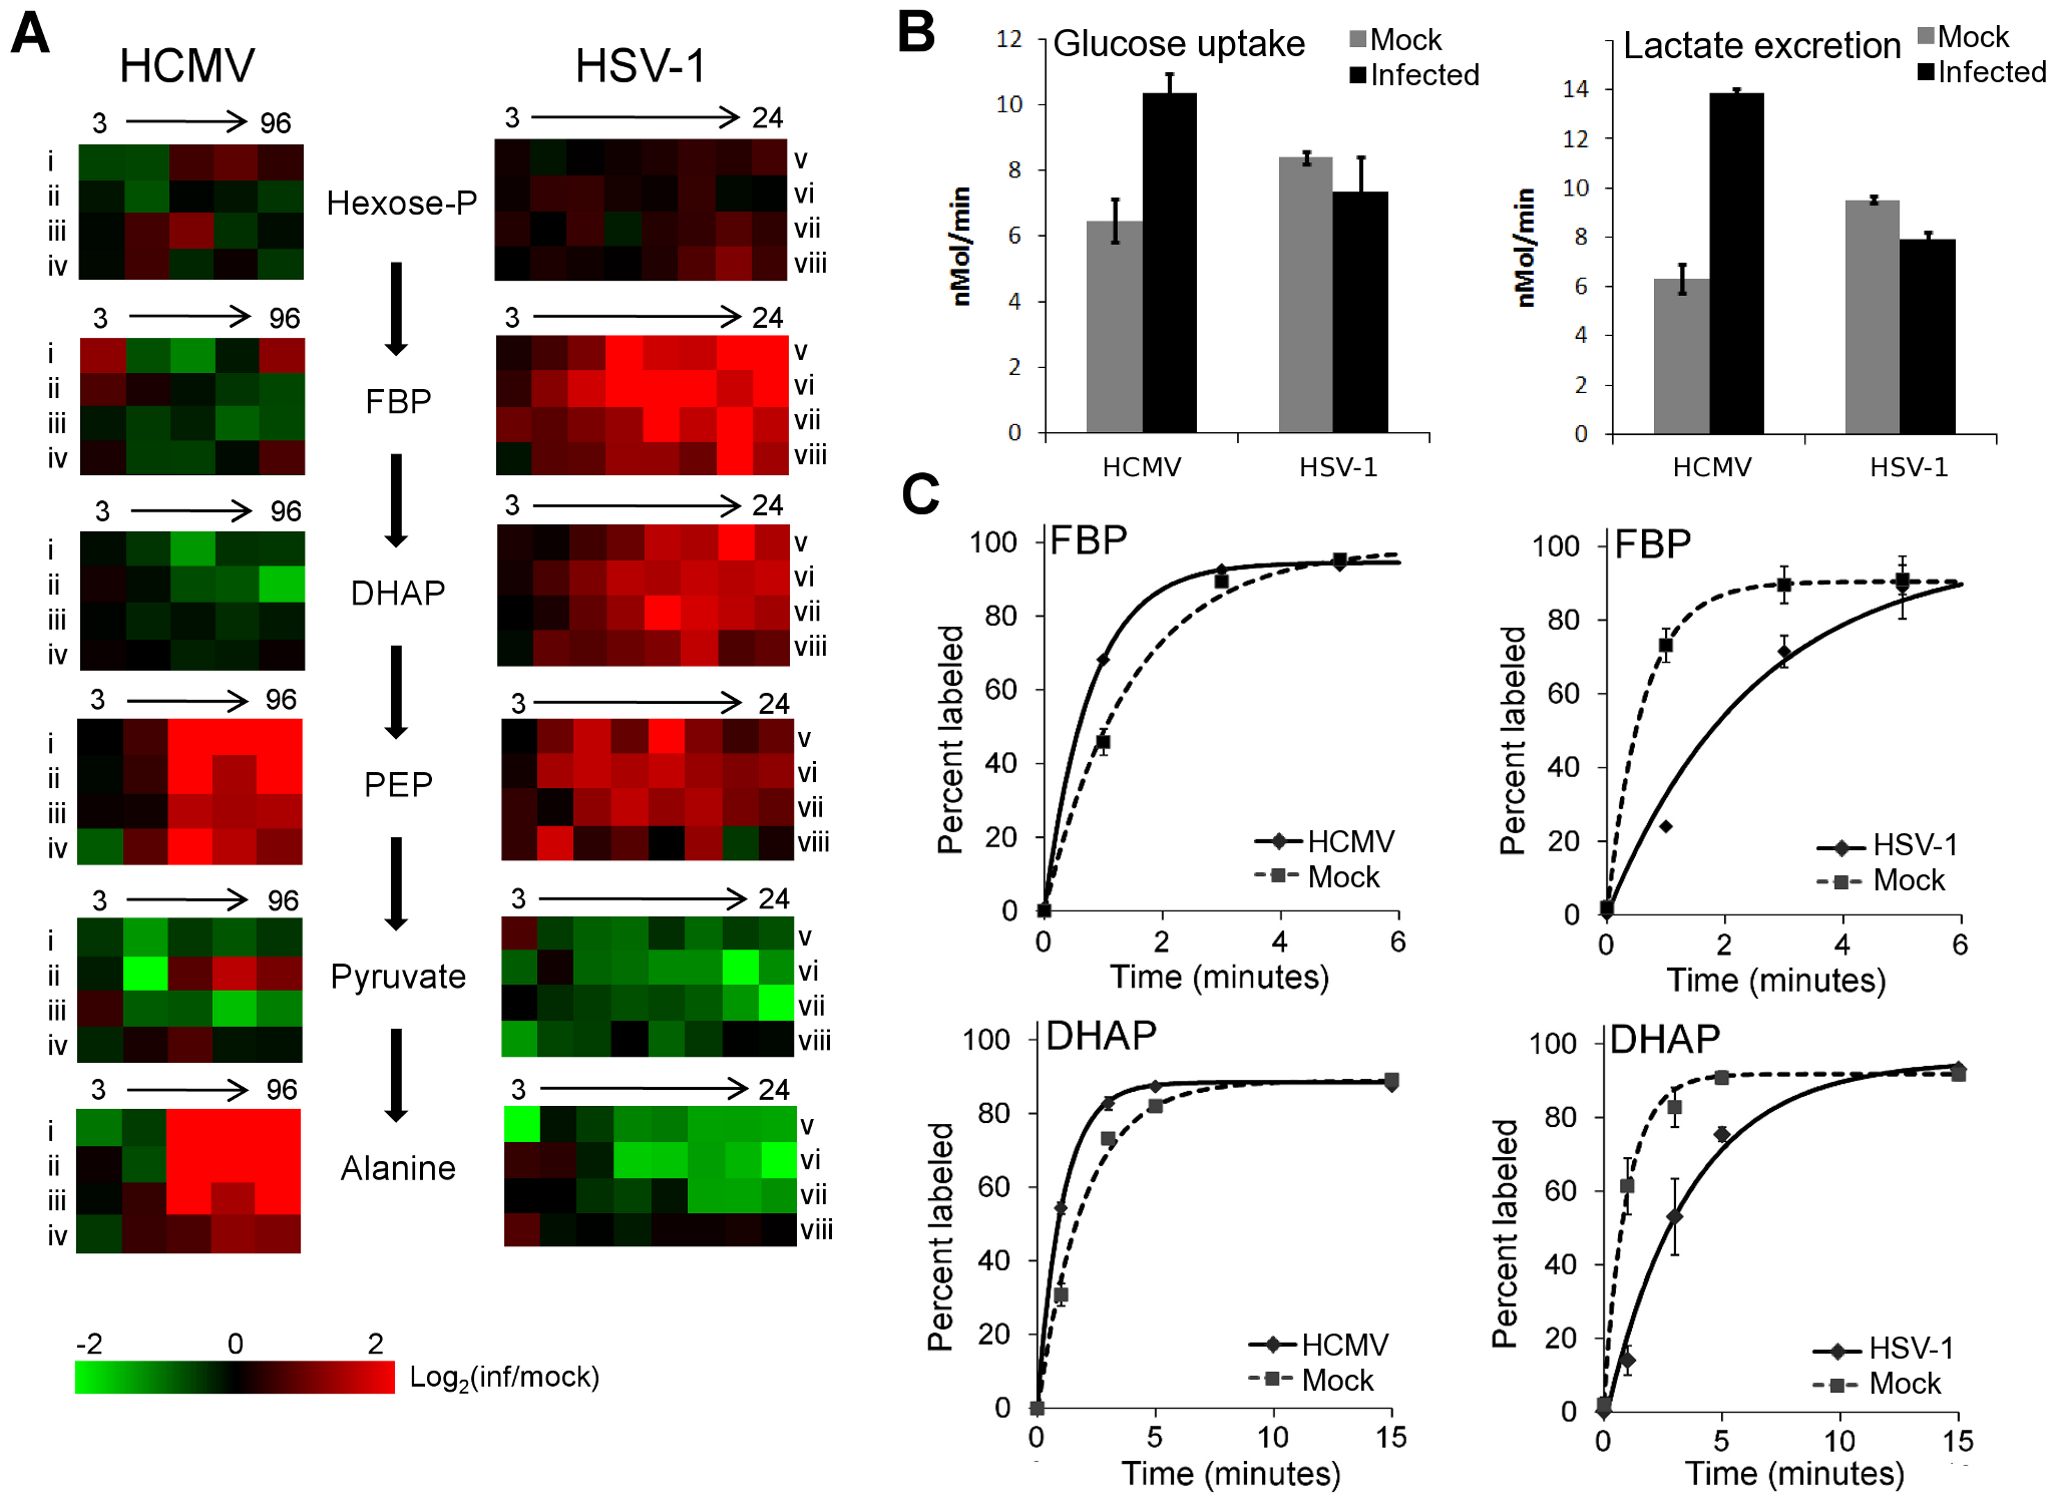 Perturbation of glycolysis by HCMV and HSV-1.